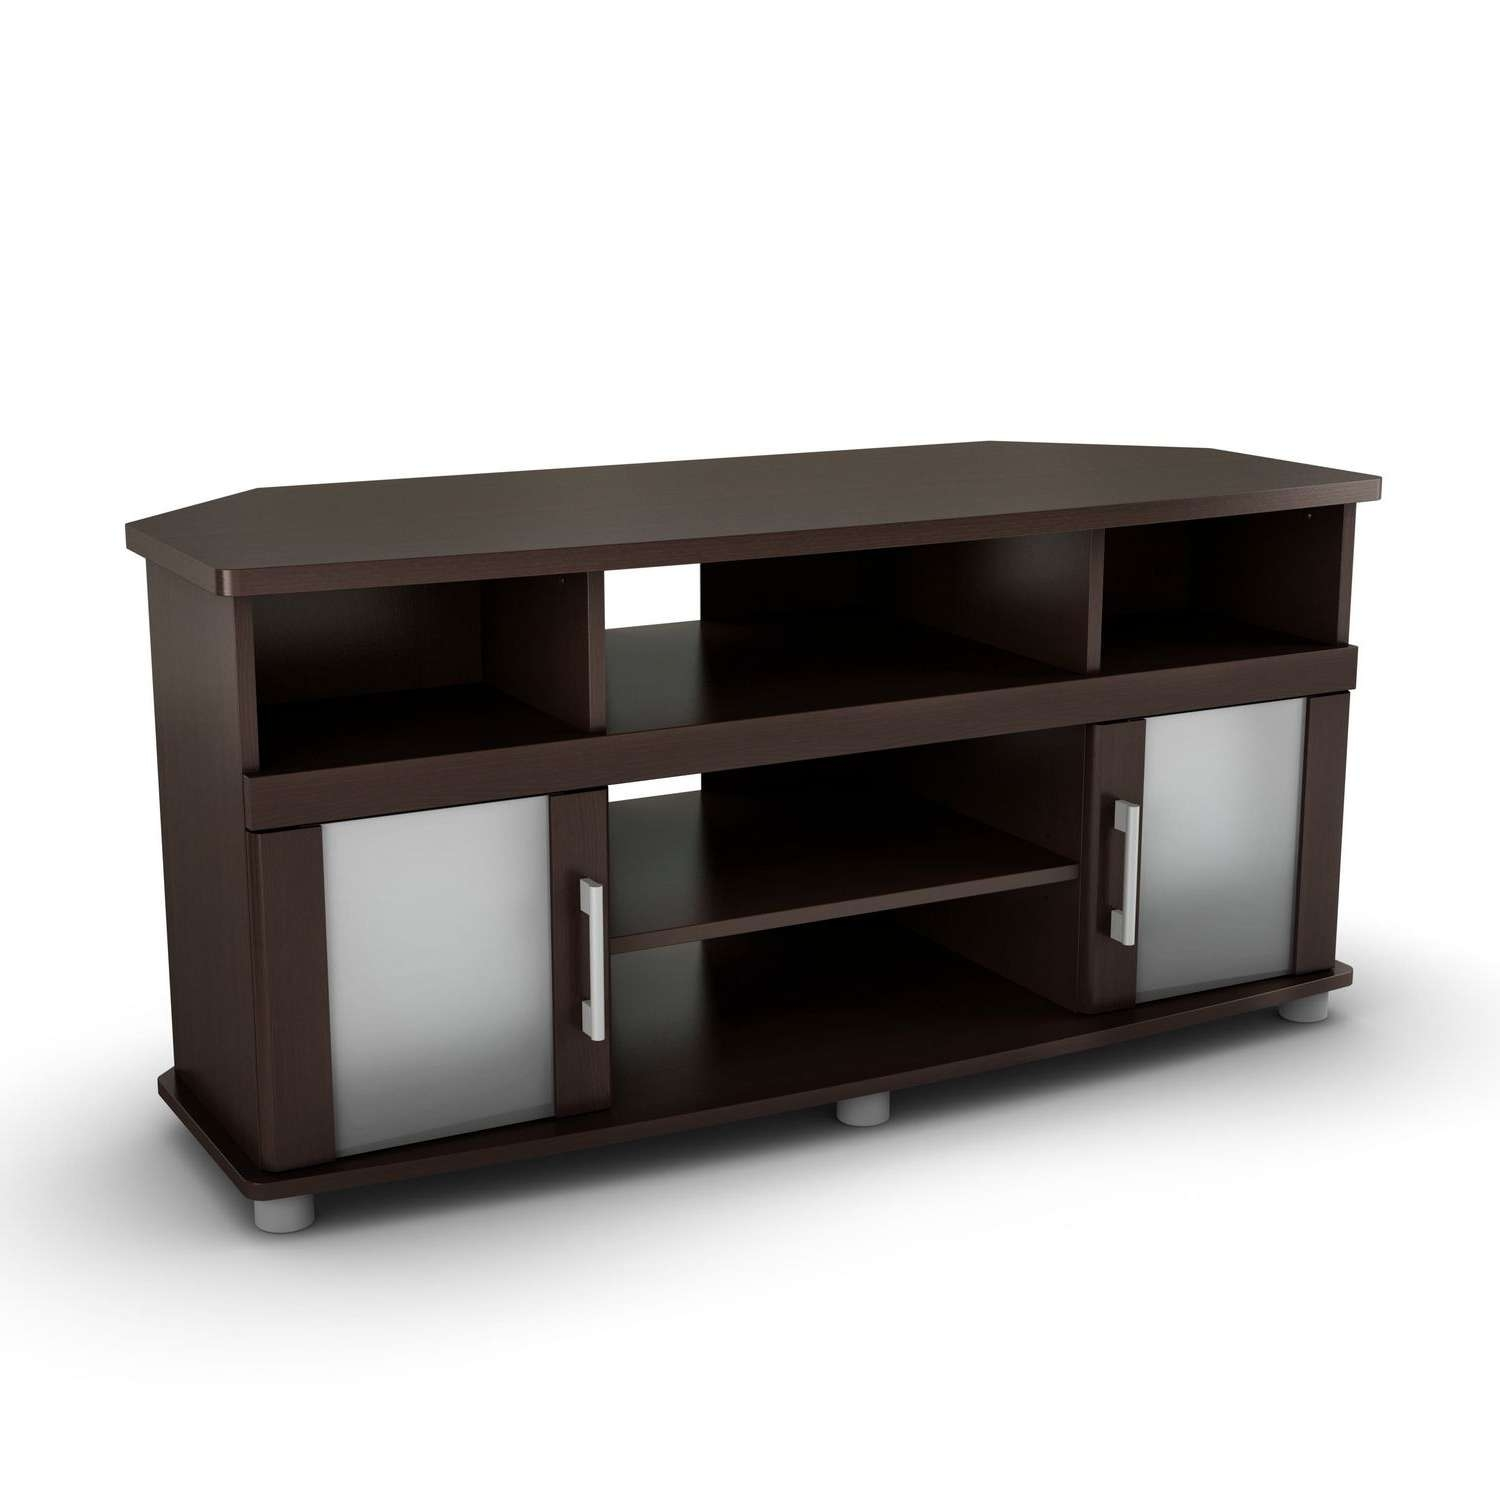 South Shore City Life Corner Tv Stand, For Tvs Up To 50 Inches With Regard To Tv Stands For Corners (View 19 of 20)